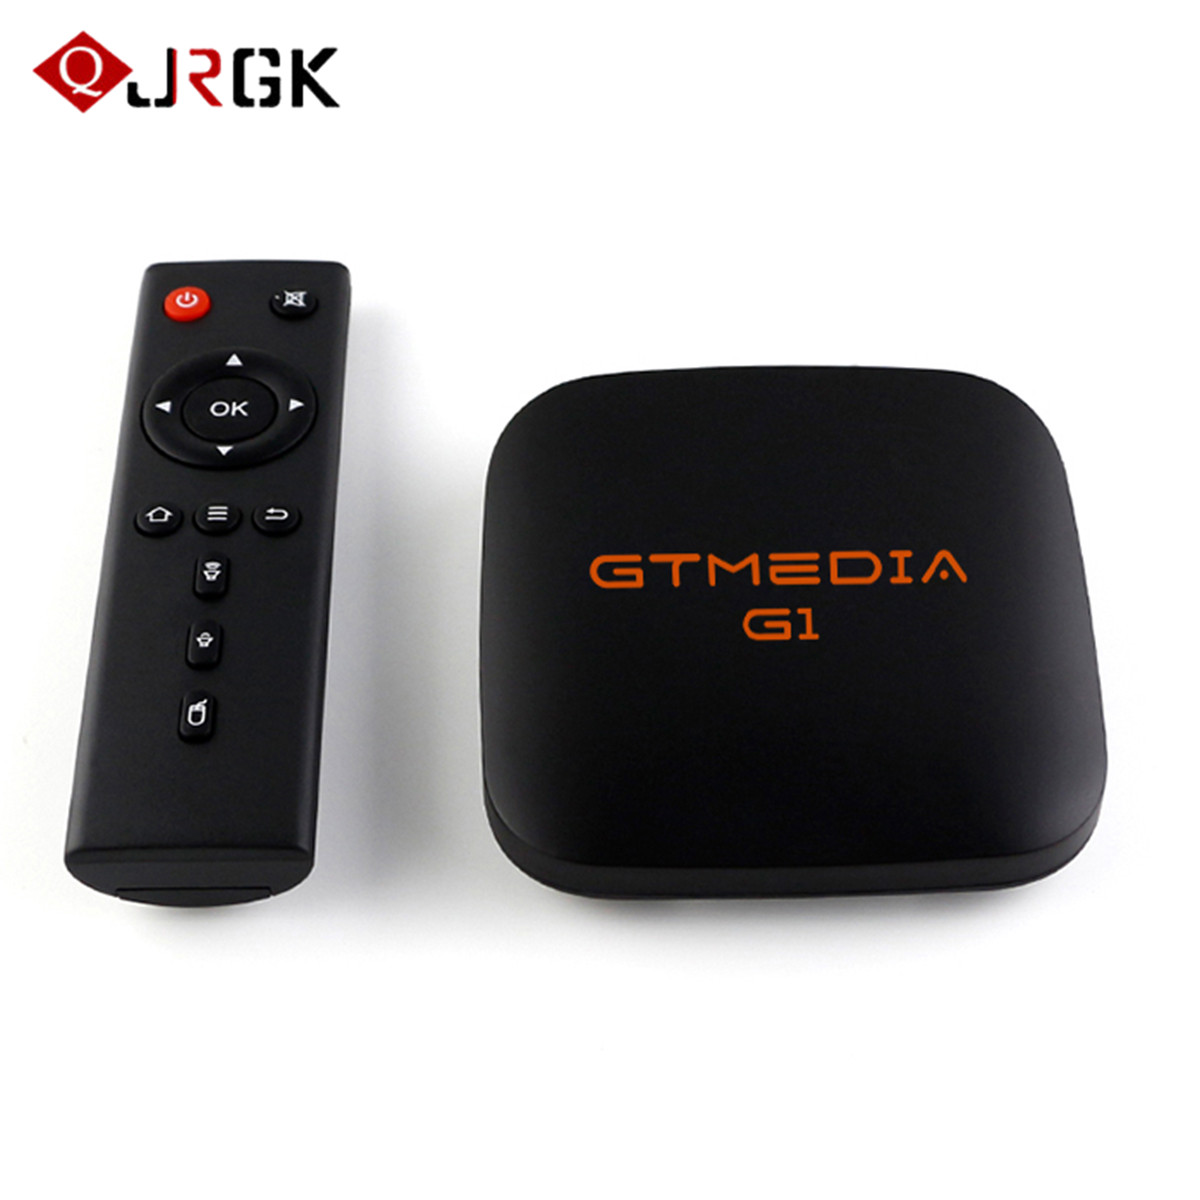 Fuloophi G1 S905W Android 7.1 tv box media player 1GB RAM 8GB ROM set top smart tv box hot sell 4Kx2K HD 2.4G Wifi box